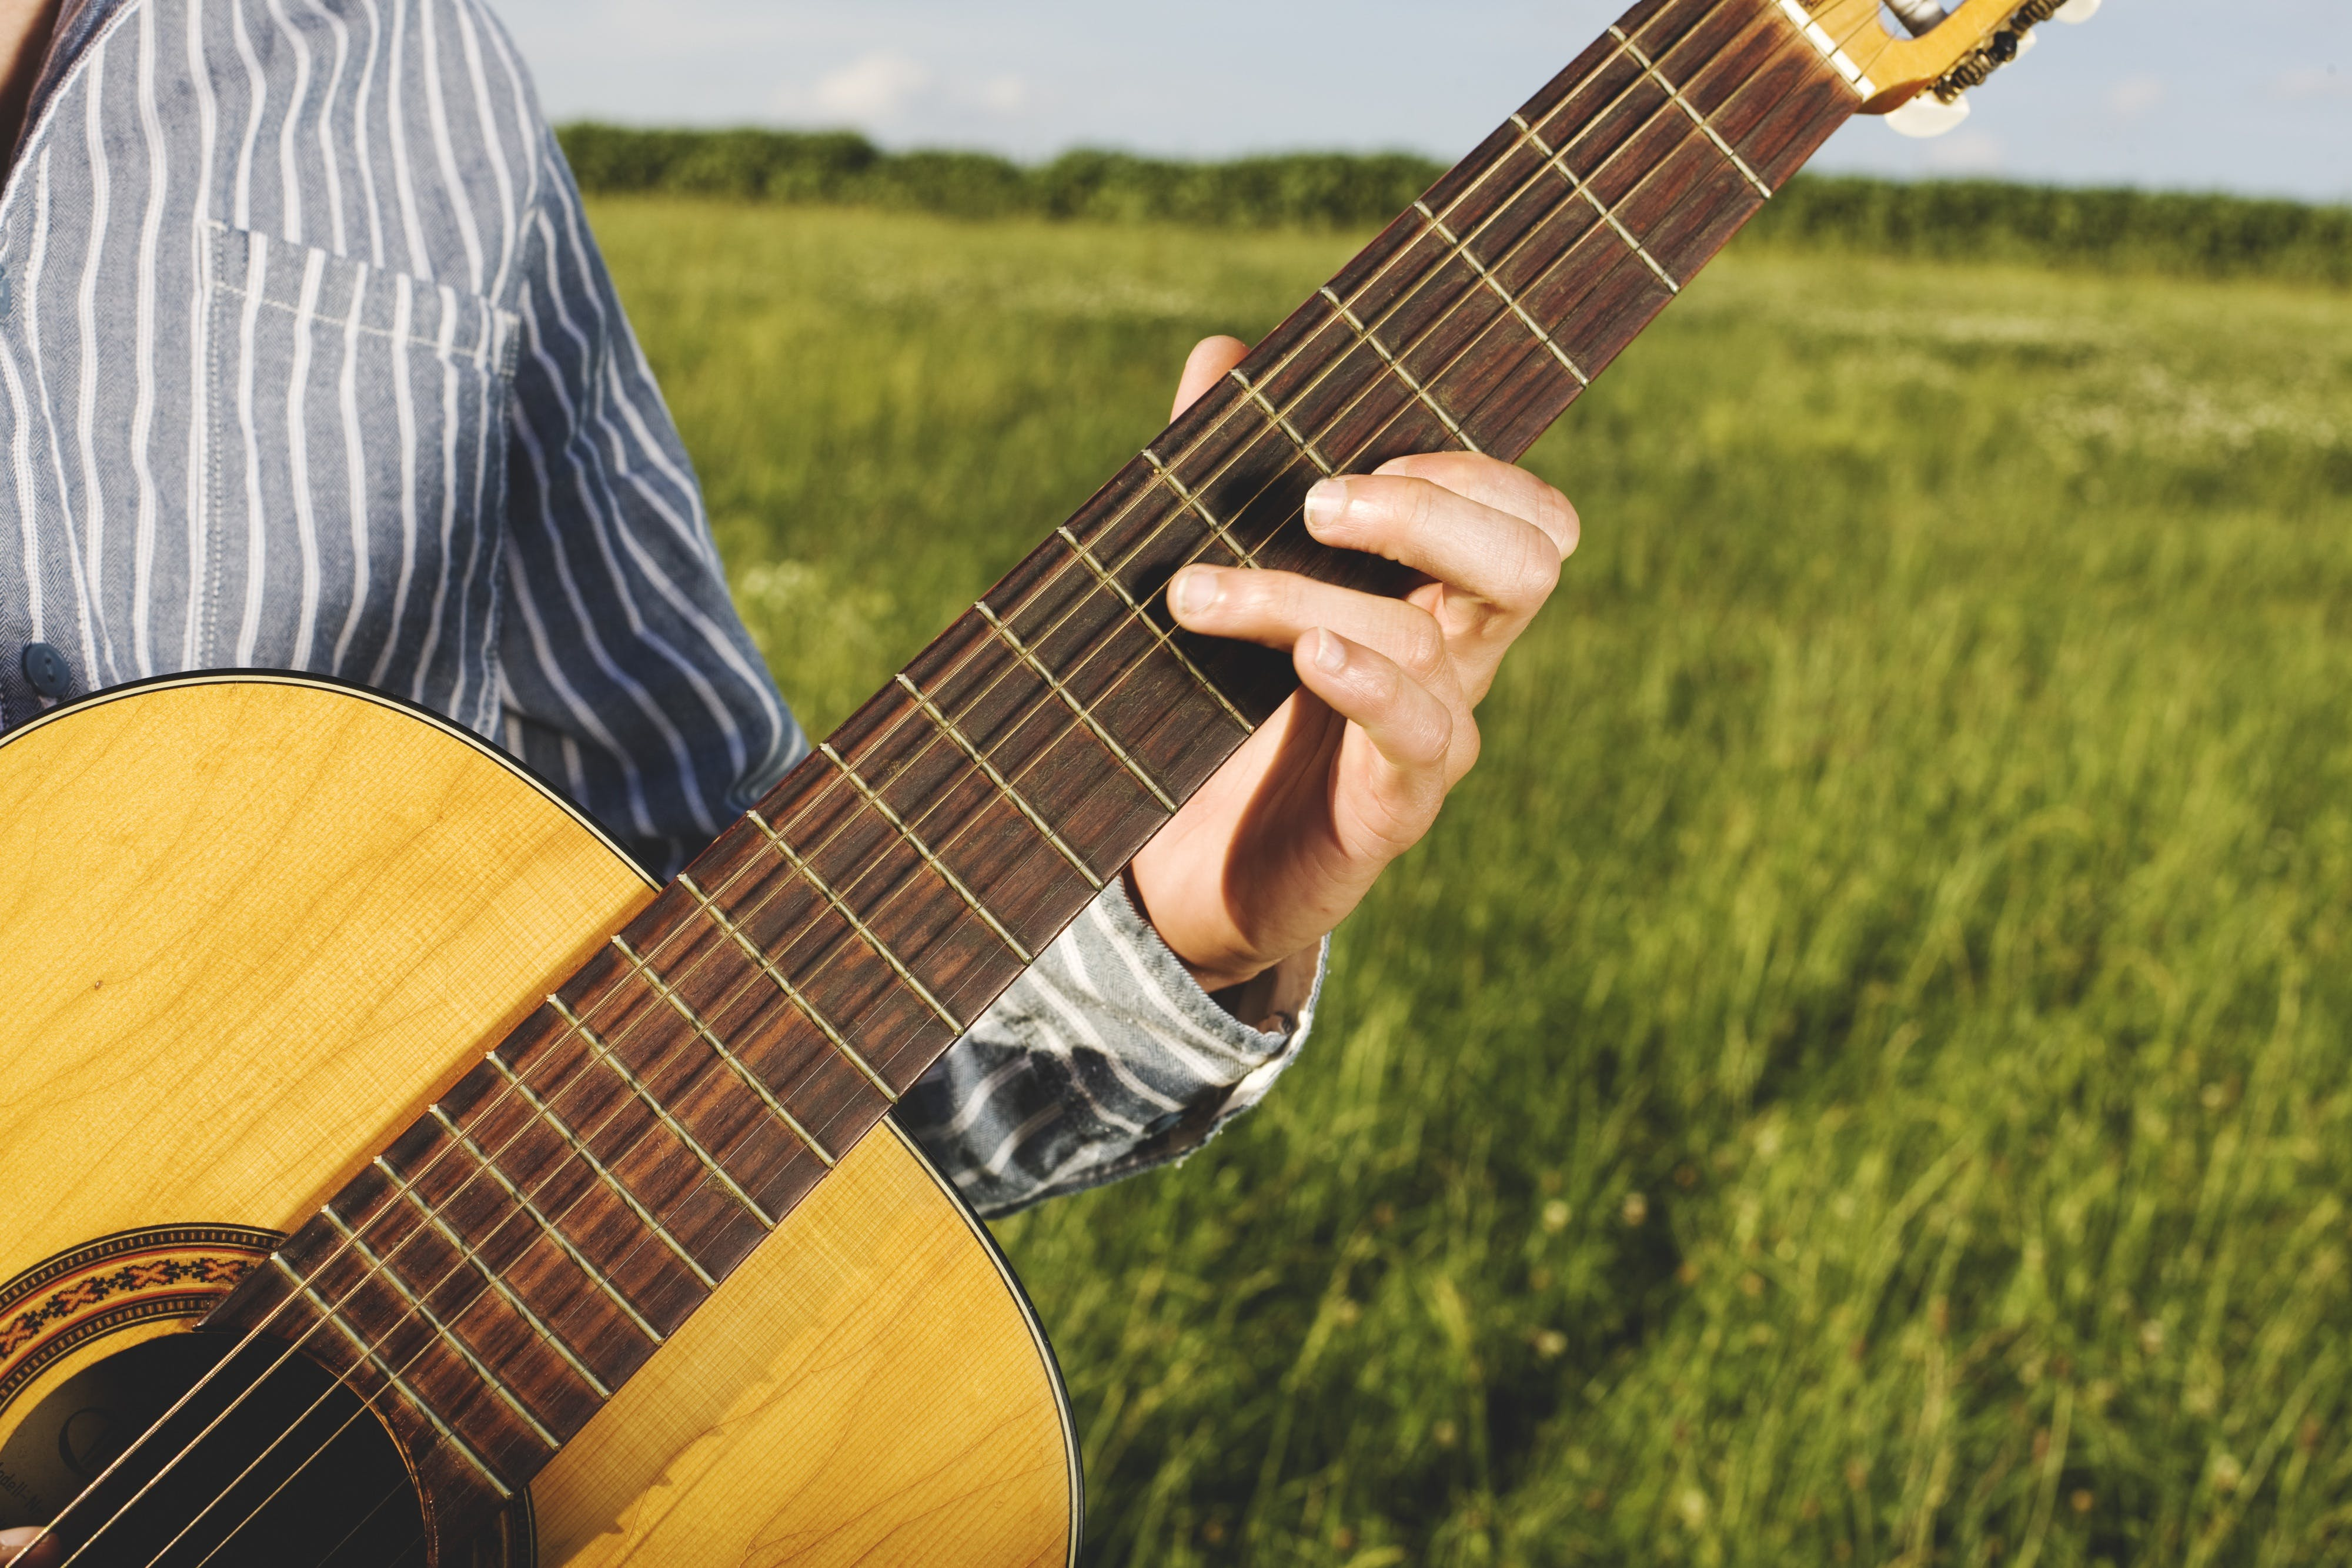 Person Playing Guitar in Grass Field